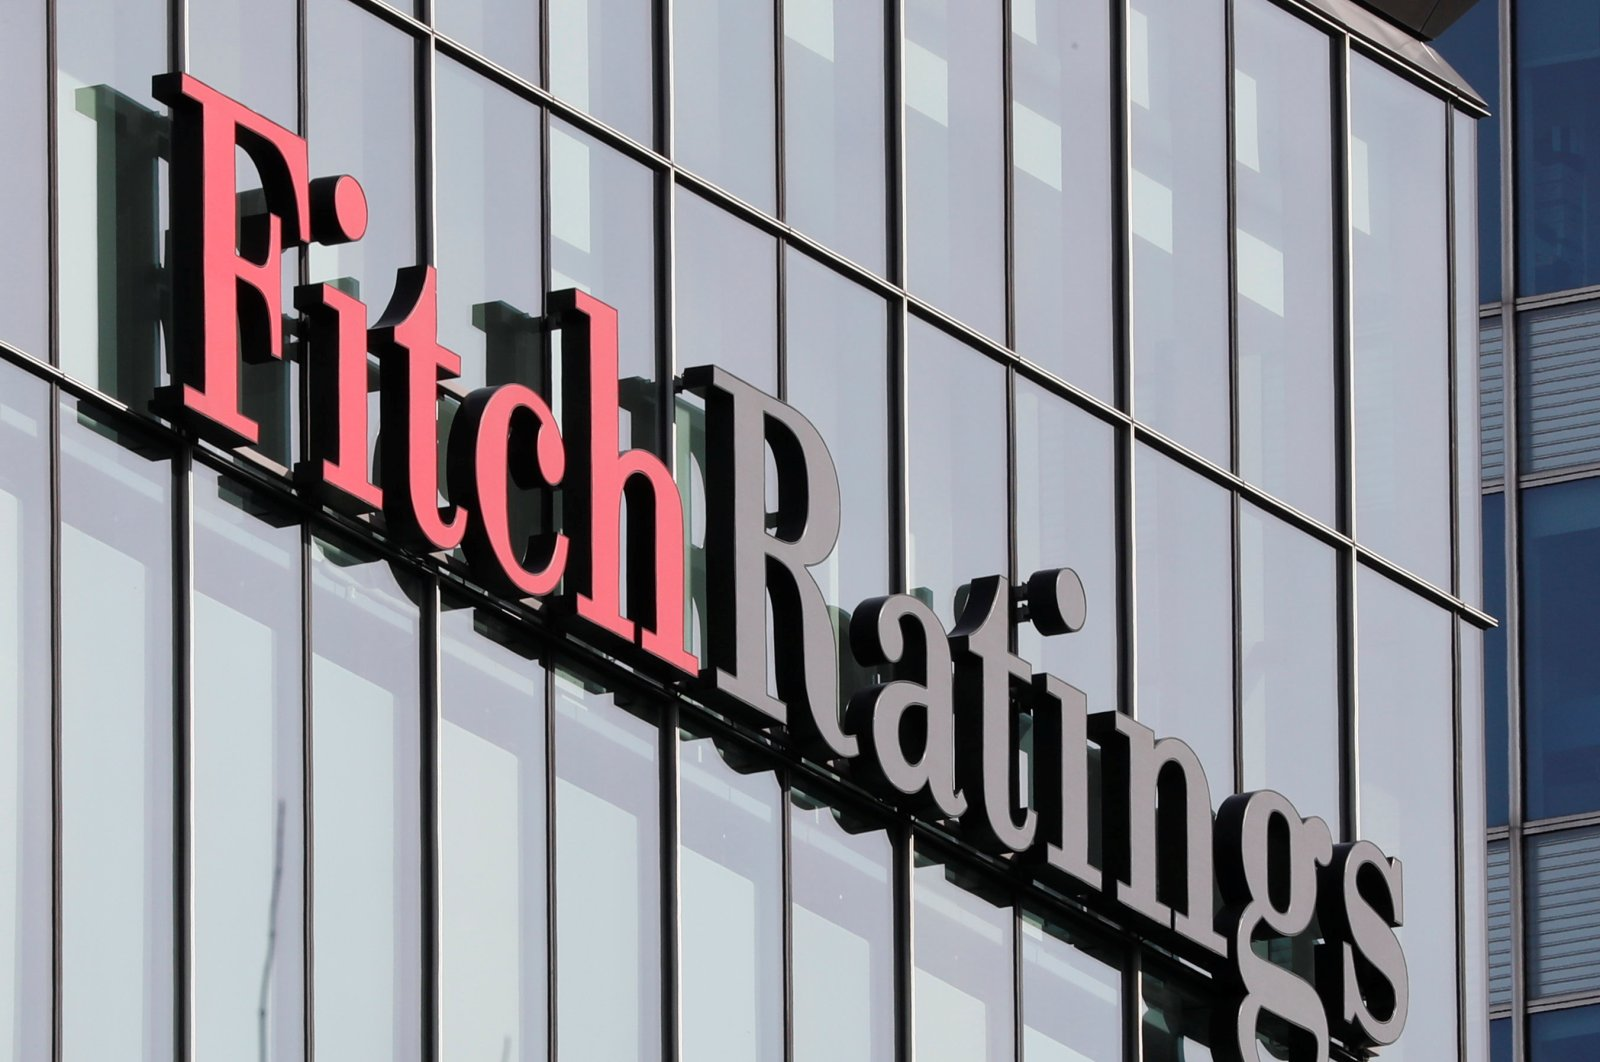 The Fitch Ratings logo is seen at their offices at Canary Wharf financial district in London, Britain, March 3, 2016. (Reuters Photo)